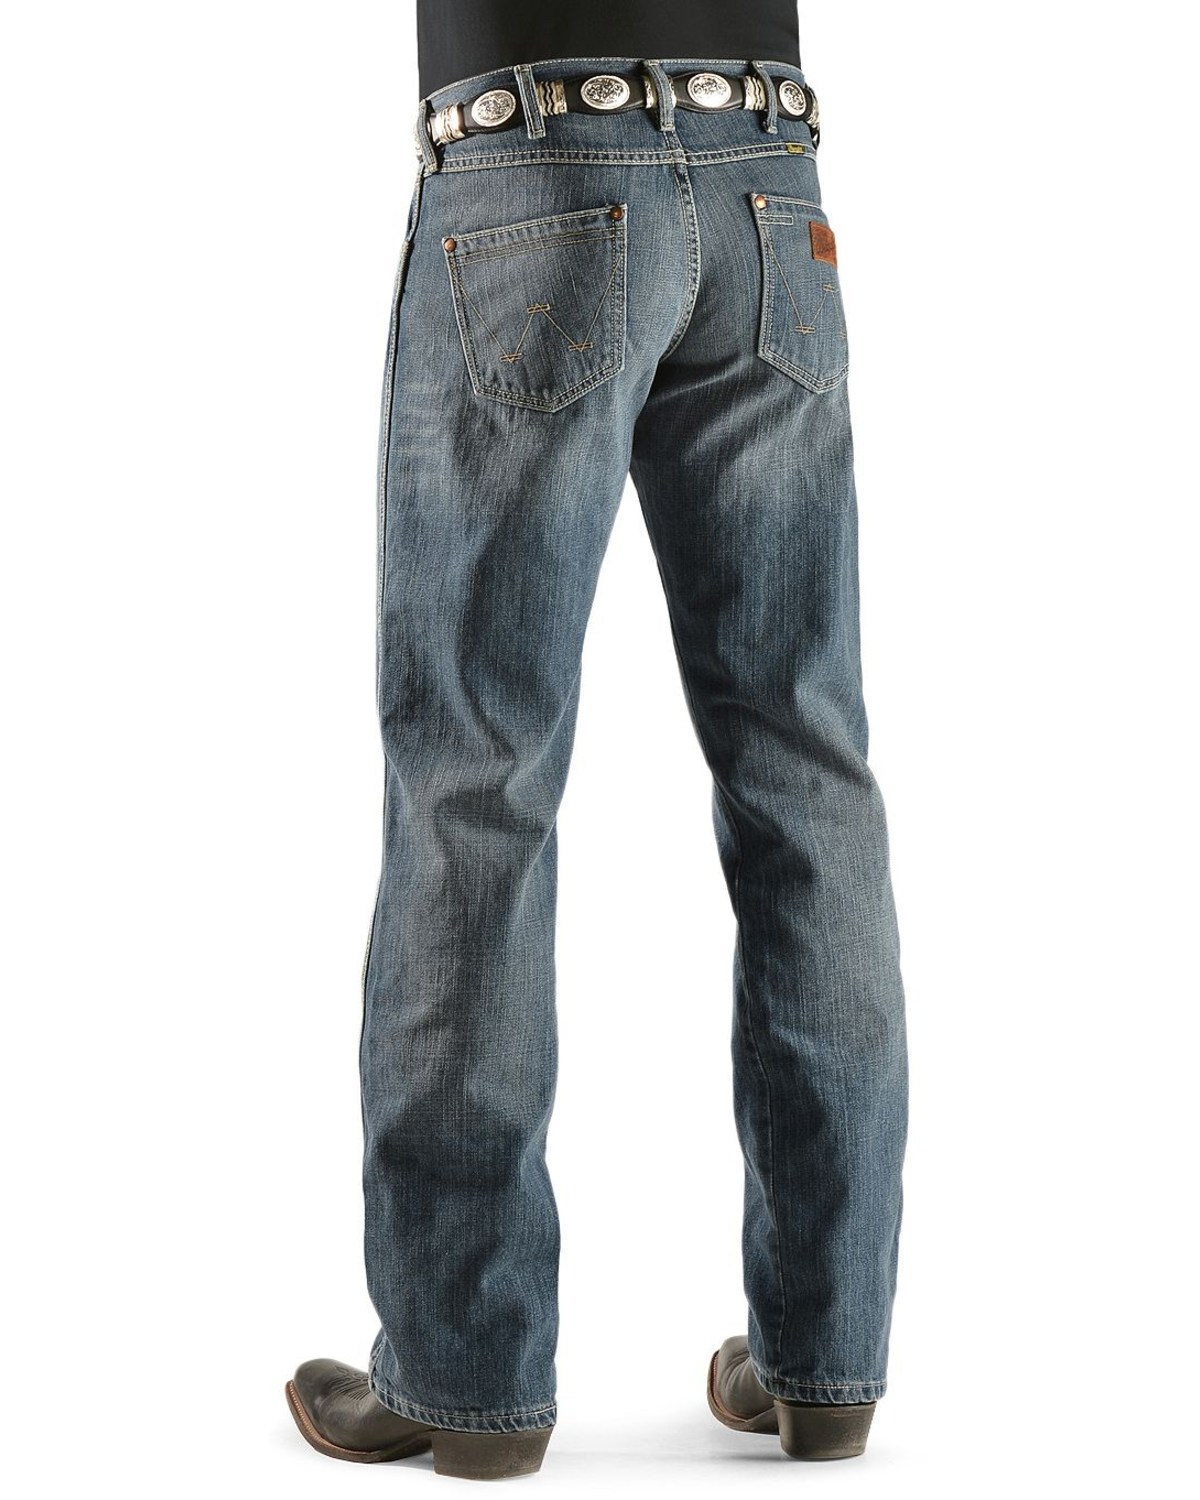 a06476ab Zoomed Image Wrangler Jeans - Retro Relaxed Fit, Denim, hi-res